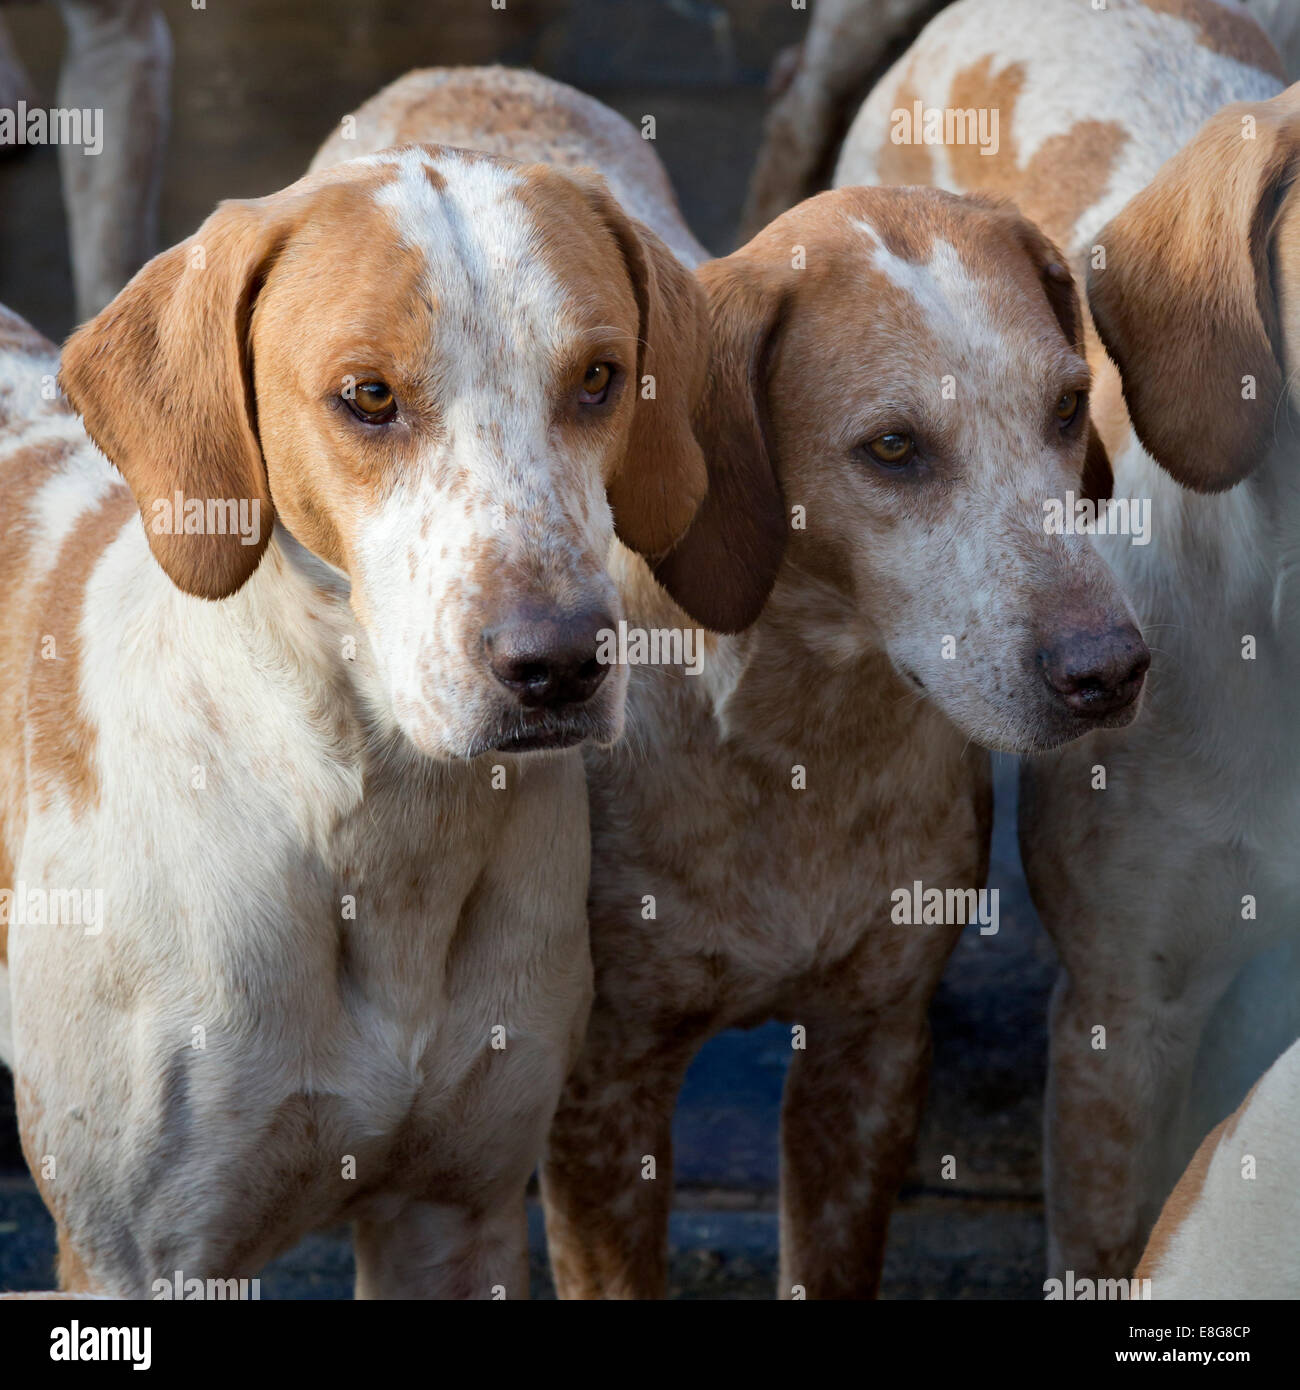 Fox hounds, North Yorkshire, England - Stock Image